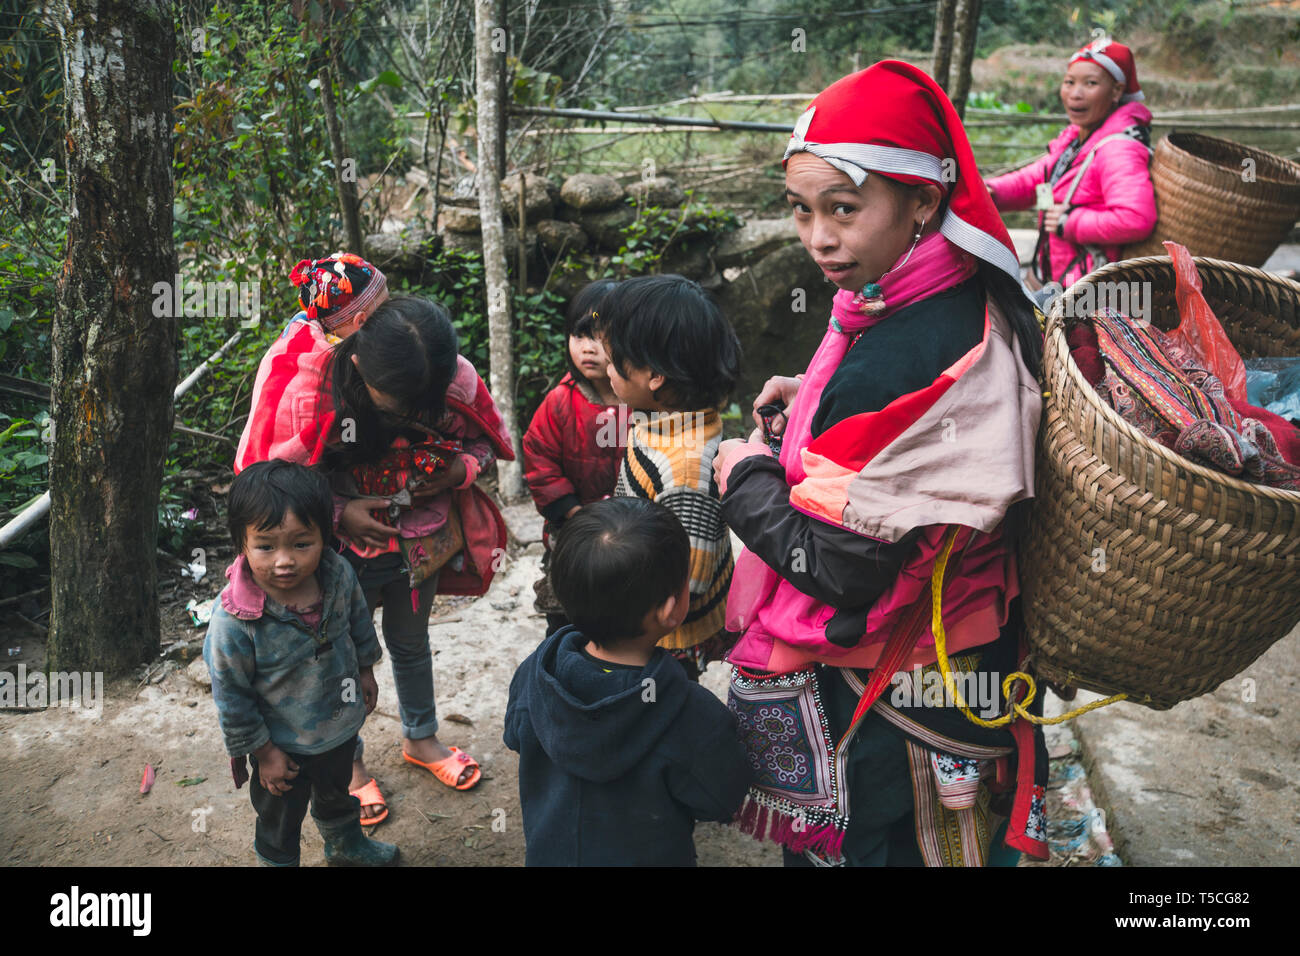 girl from the tribe red dzao, with a large wicker basket behind, surrounded by children. TA PHIN, LAO CAI, VIETNAM - 12 January 2019 Stock Photo